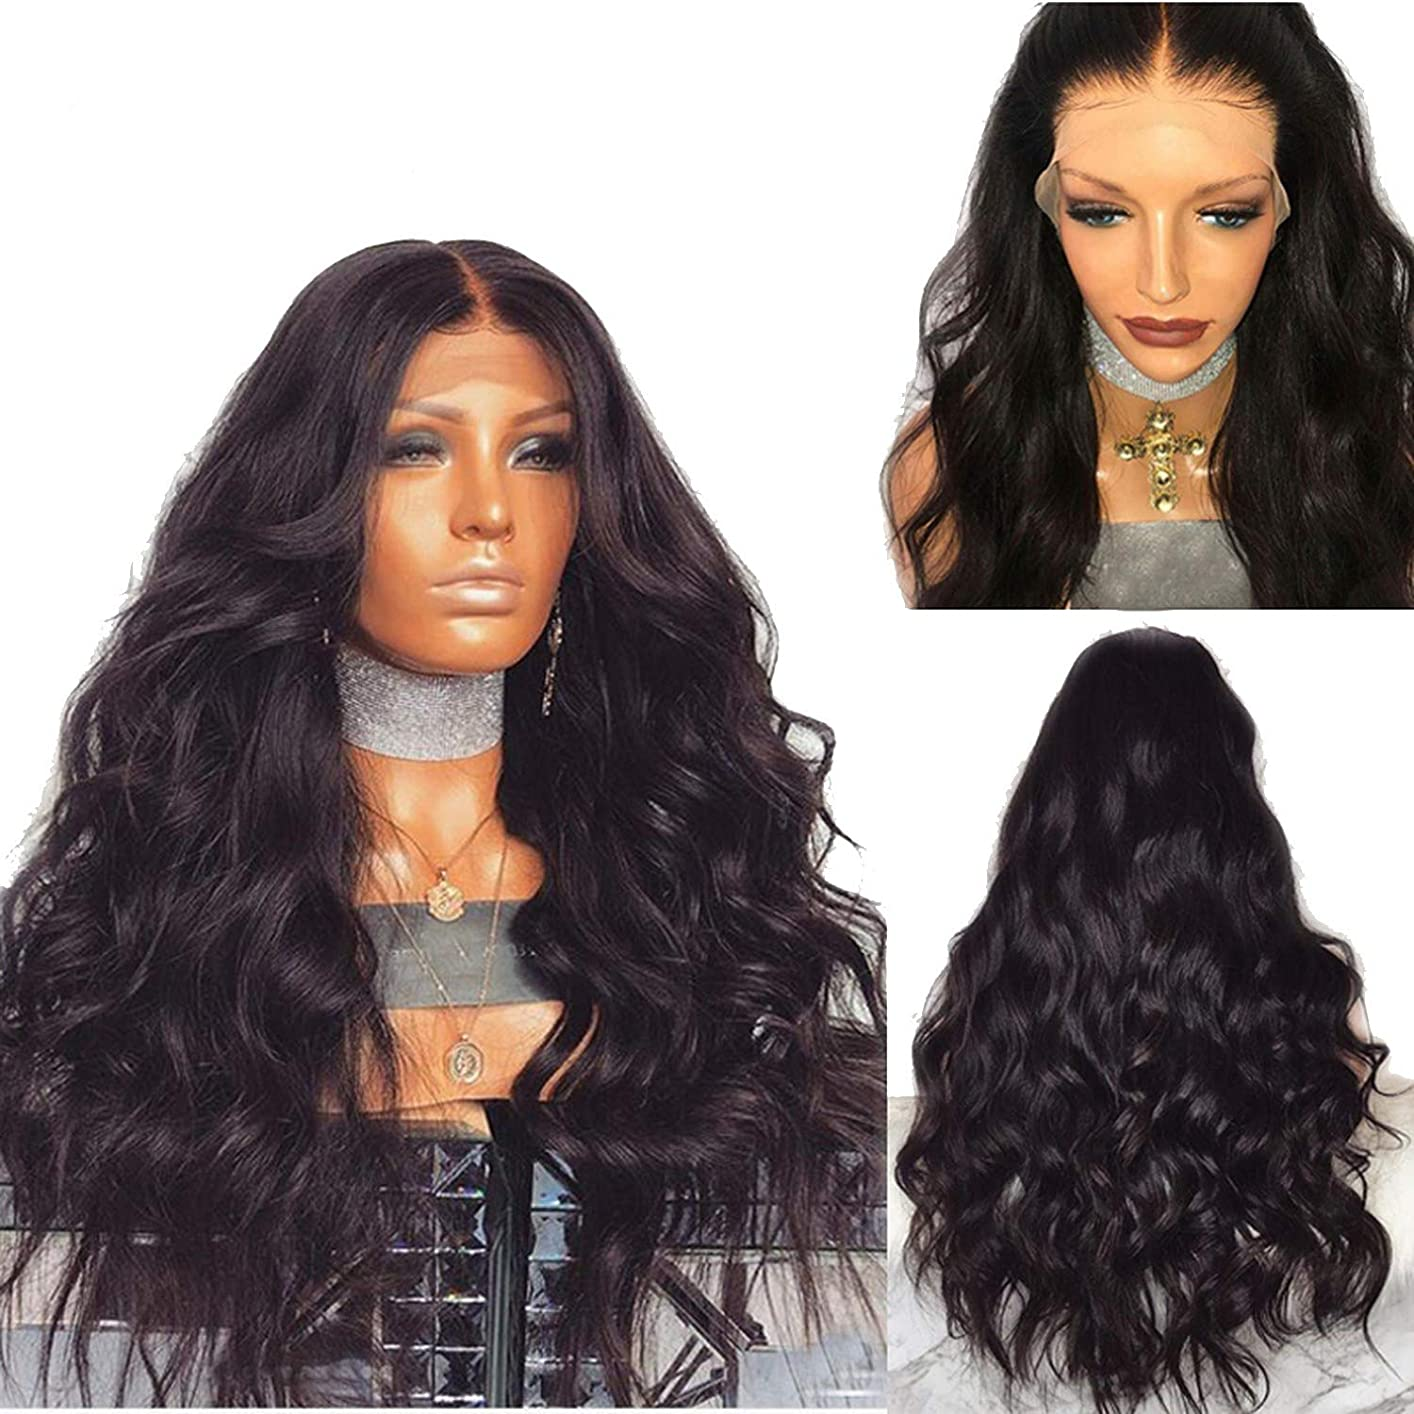 Brazilian Remy Human Hair Body Wave Lace Front Human Hair Wigs With Baby Hair Around Cap Middle Part Pre-Plucked Hairline,#1B,20inches,130%